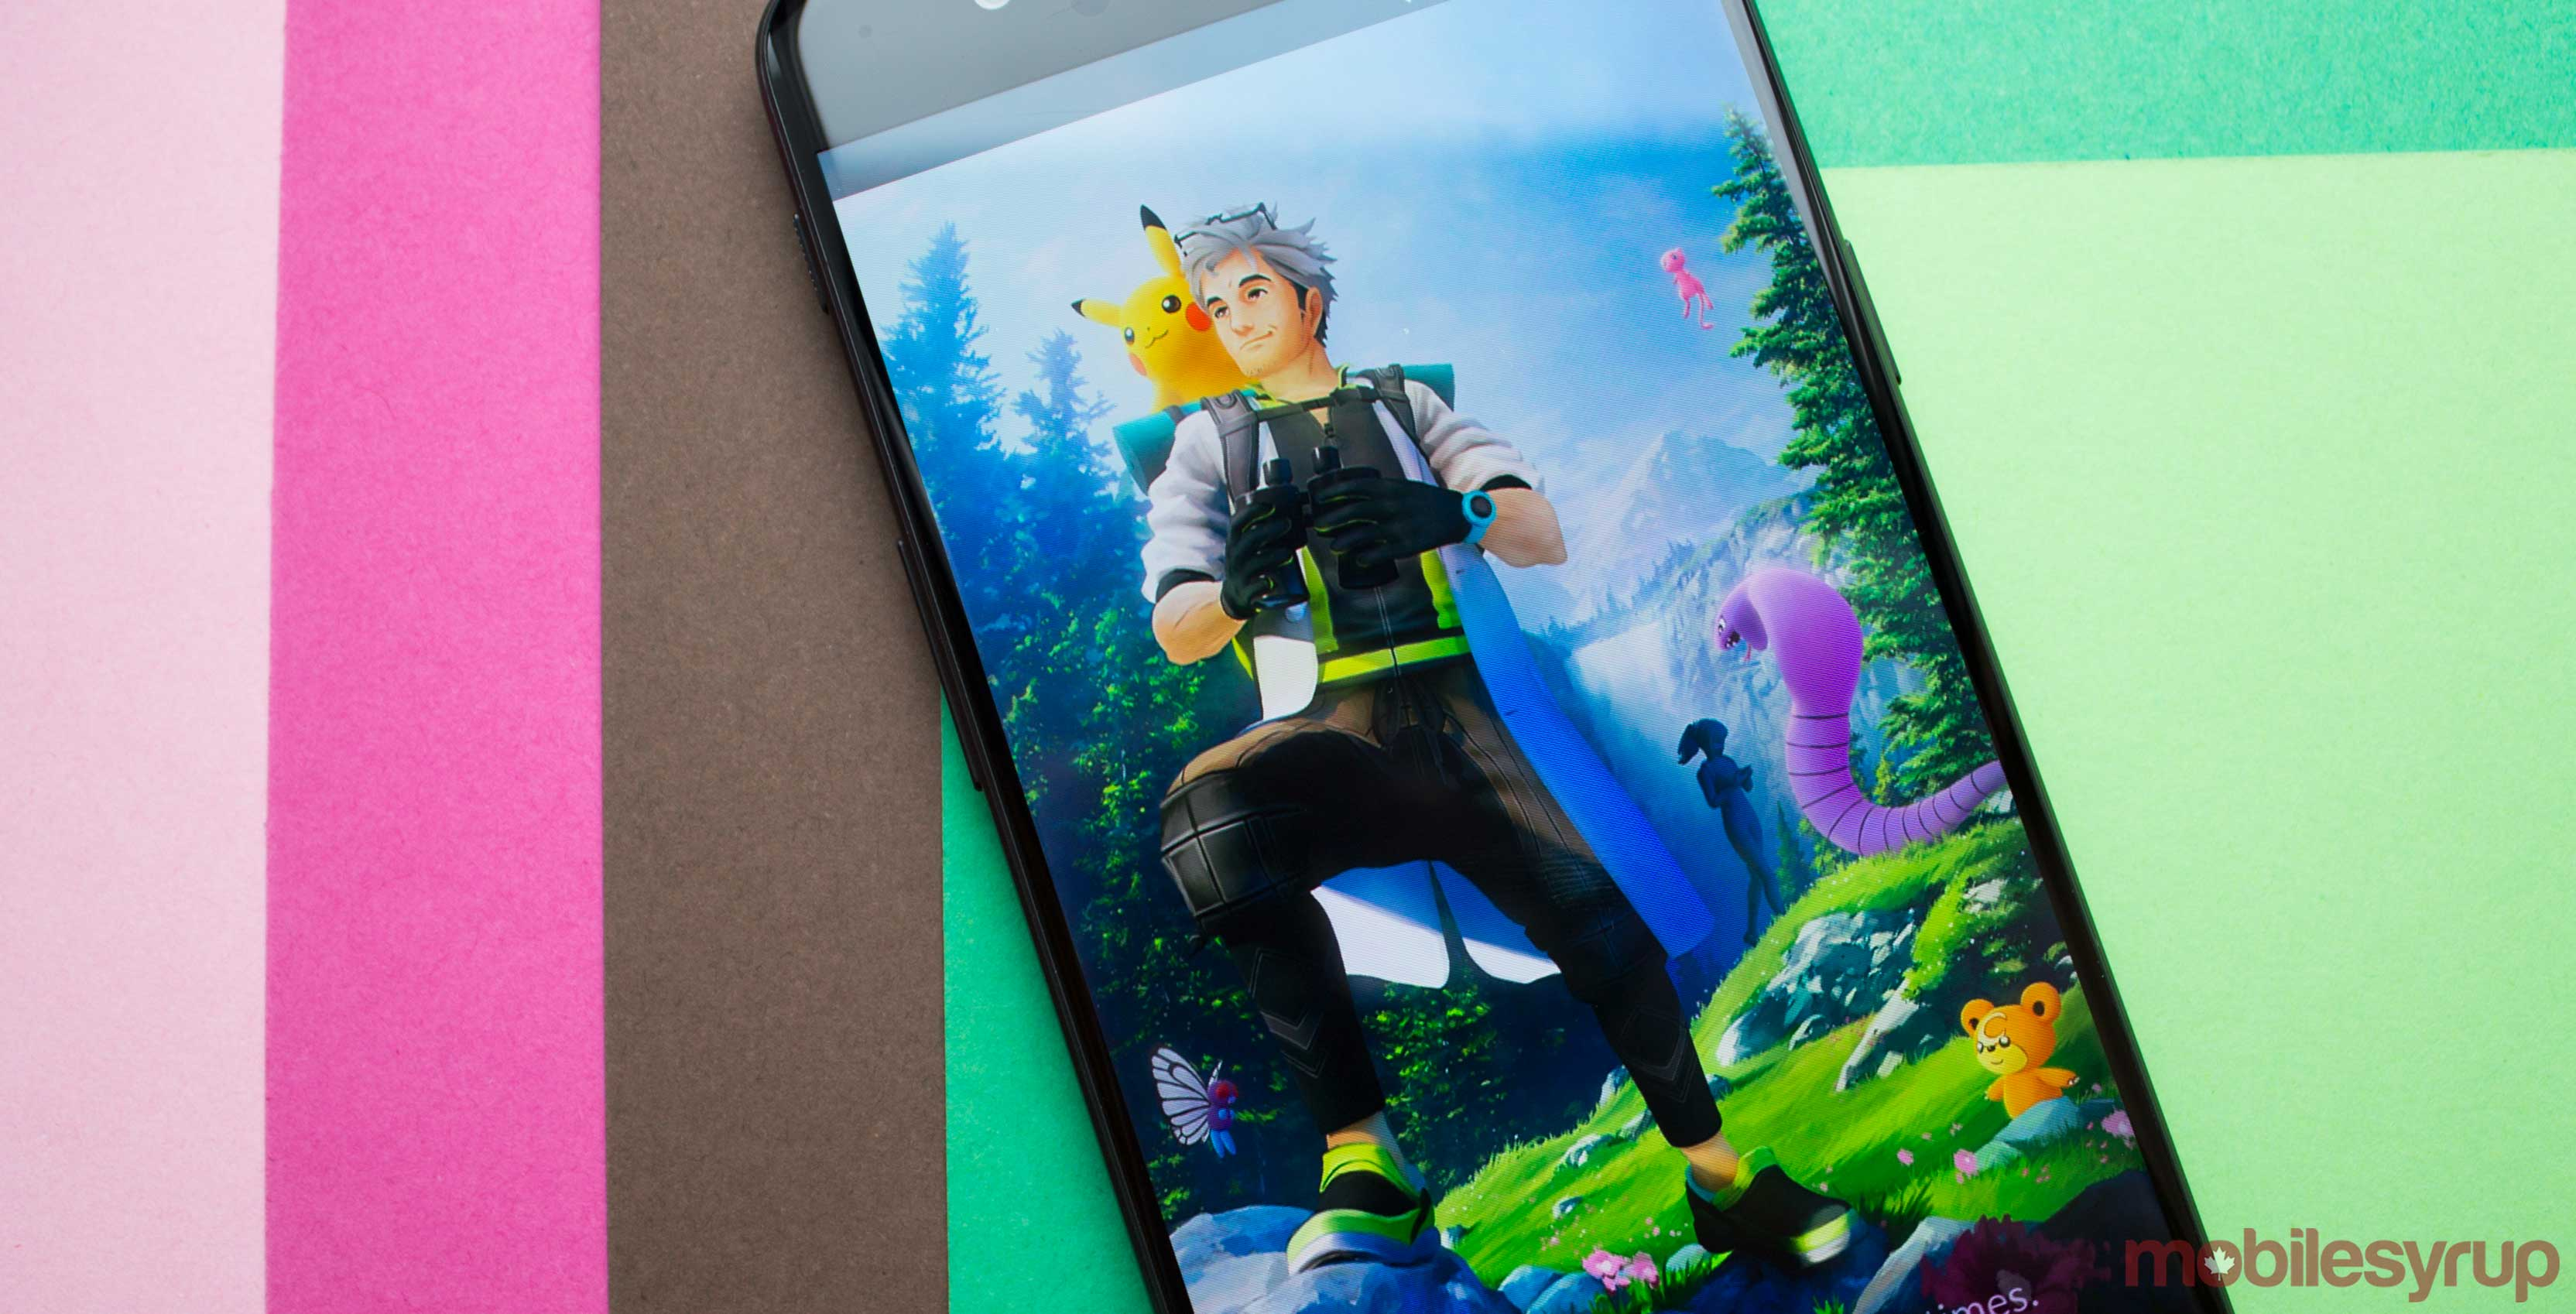 Pokémon Go wallpaper on phone